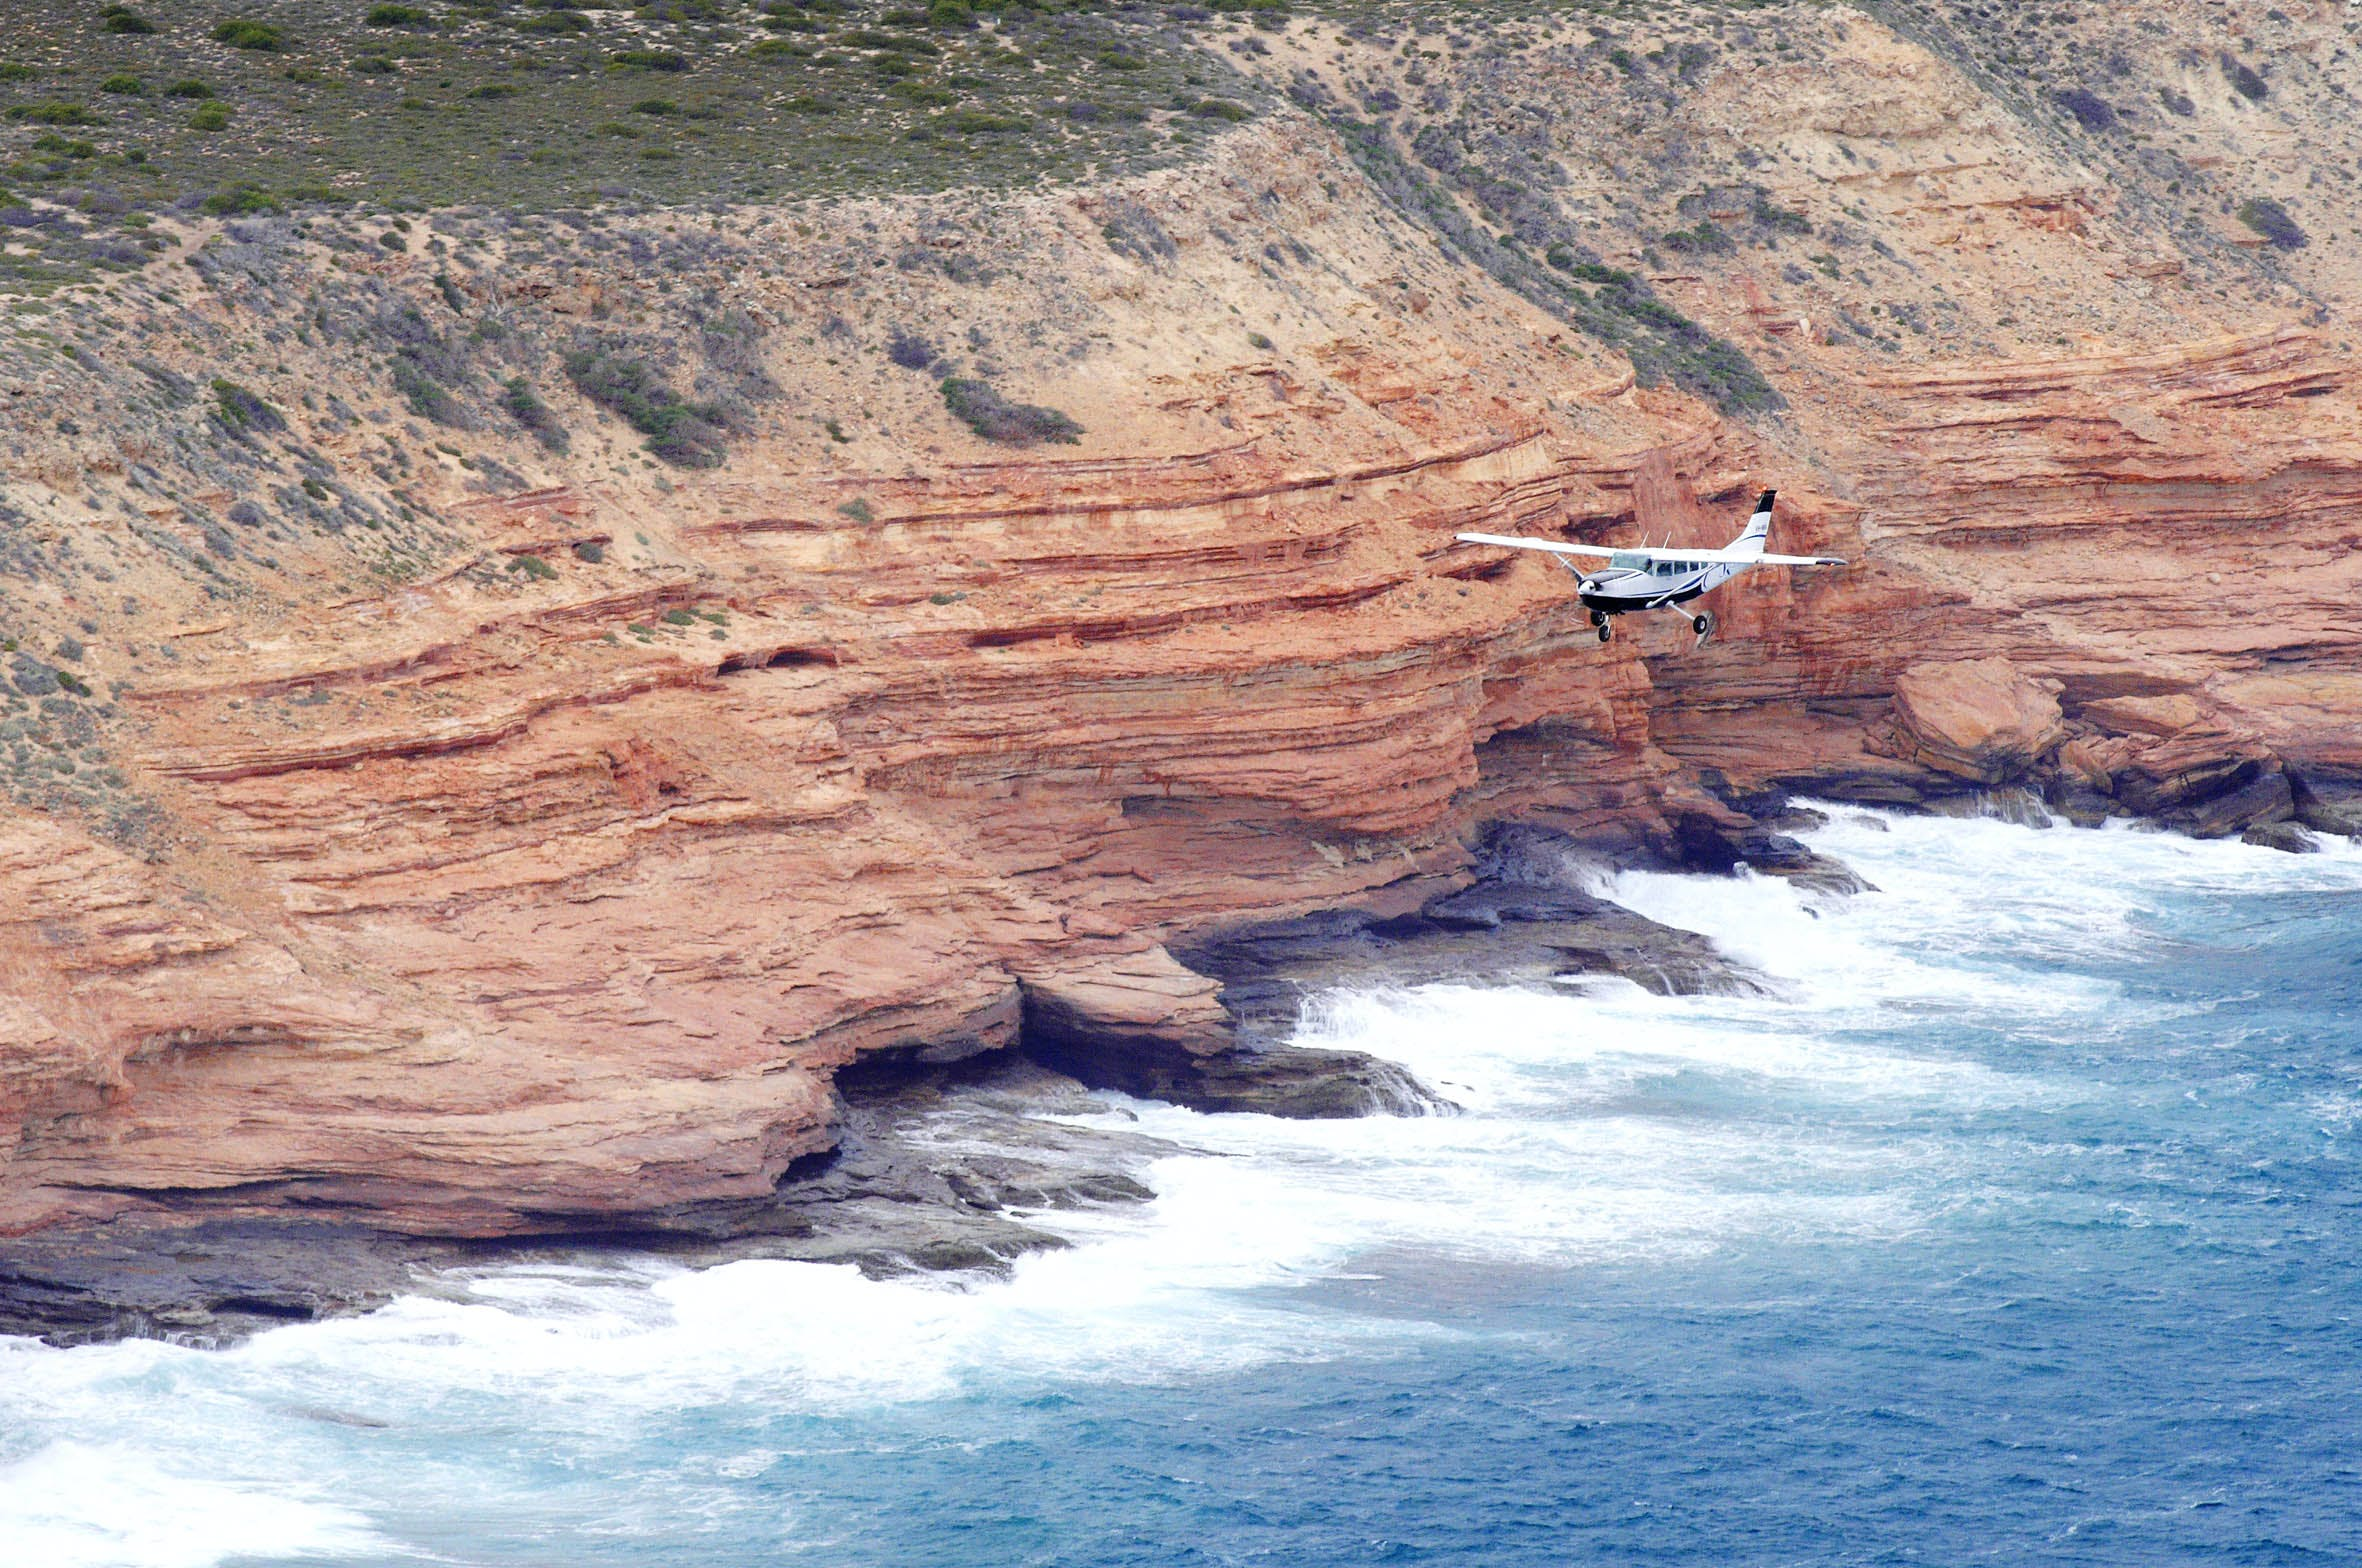 Kalbarri scenic flights - Blue Ocean Beach Resort